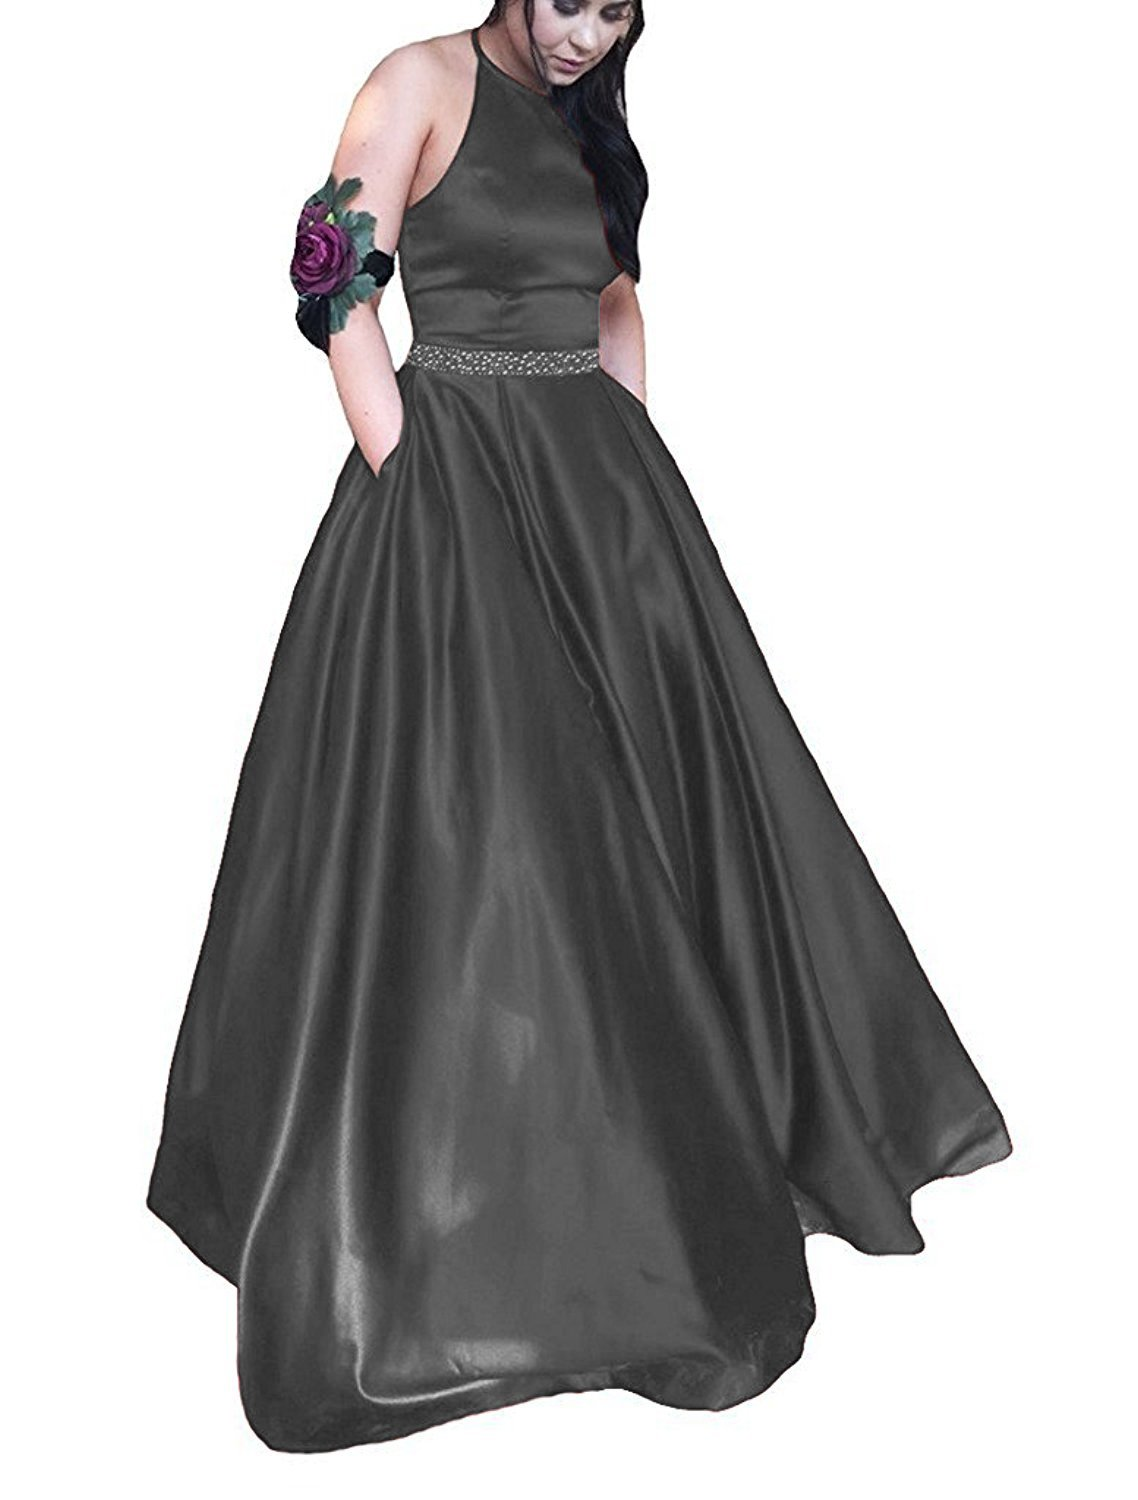 Pettus Women's Halter Satin Prom Dresses Long Beads Sequins Evening Party Gowns